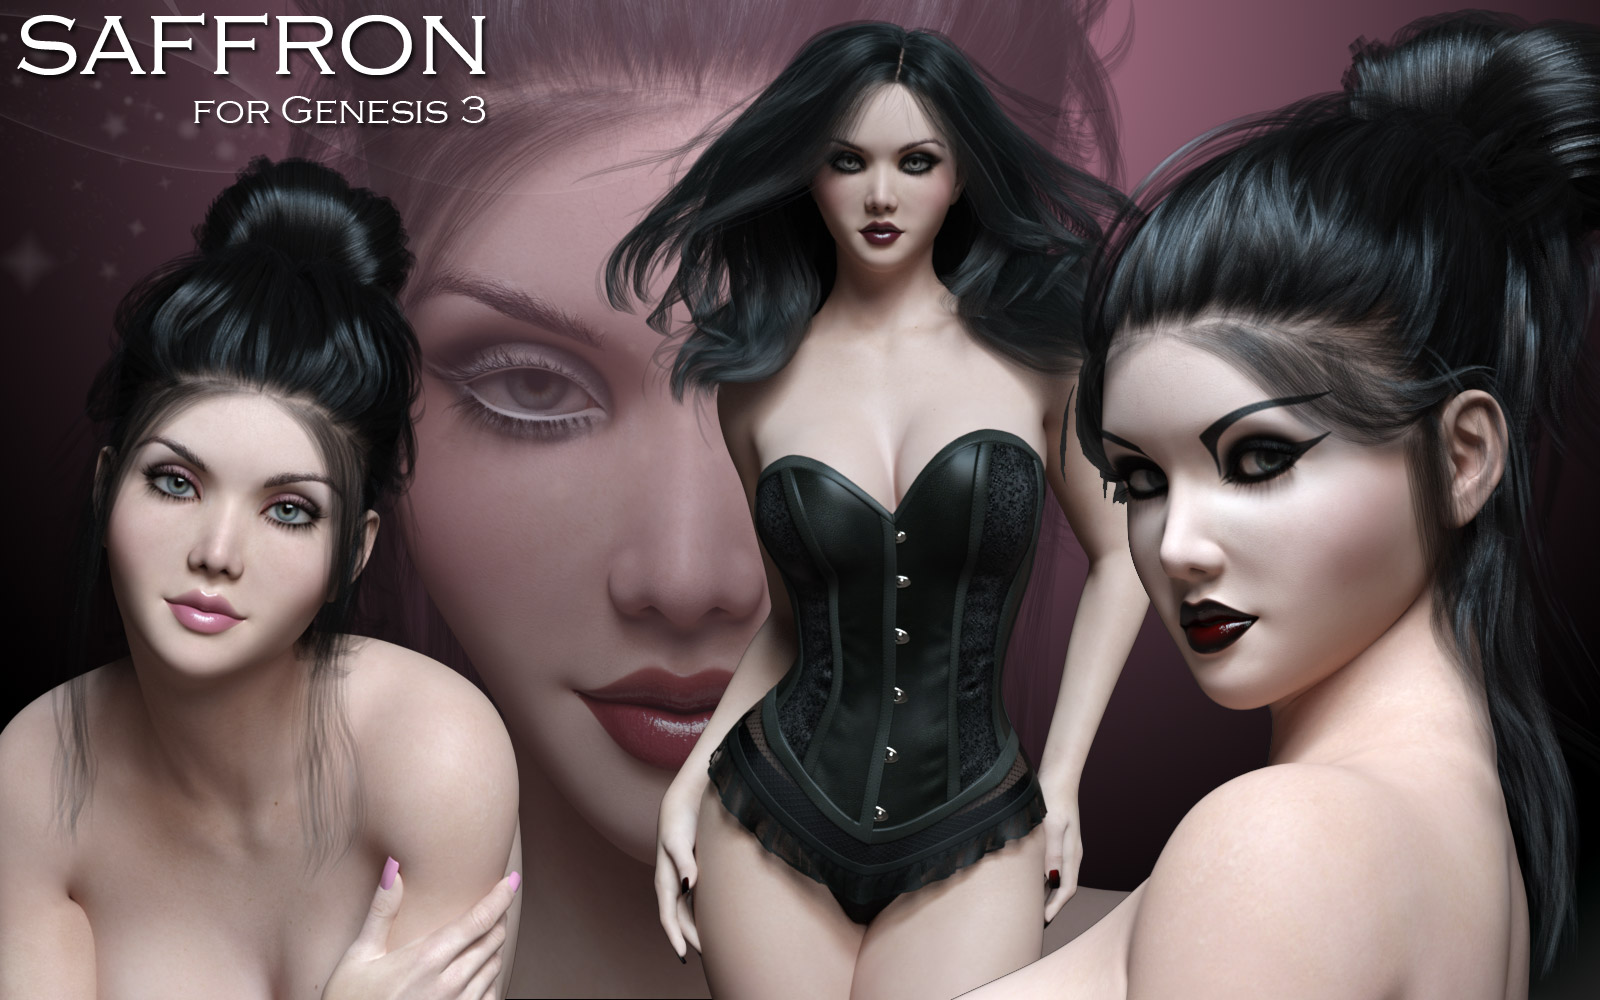 Saffron for Genesis 3